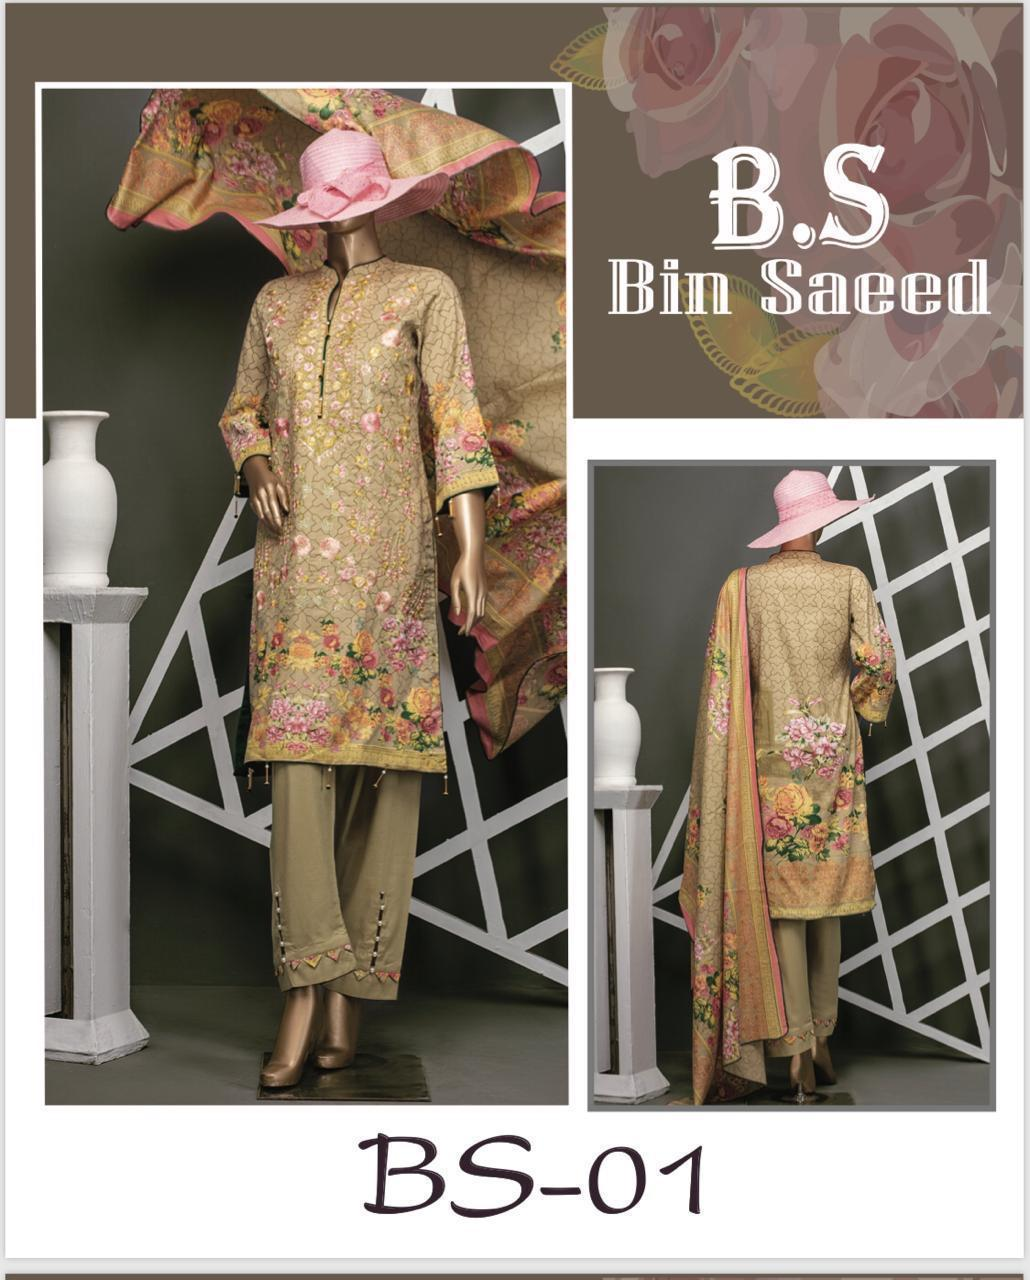 998acf9e4f Bin Saeed Peach Color Embroidered Suit: Buy Online at Best Prices in ...